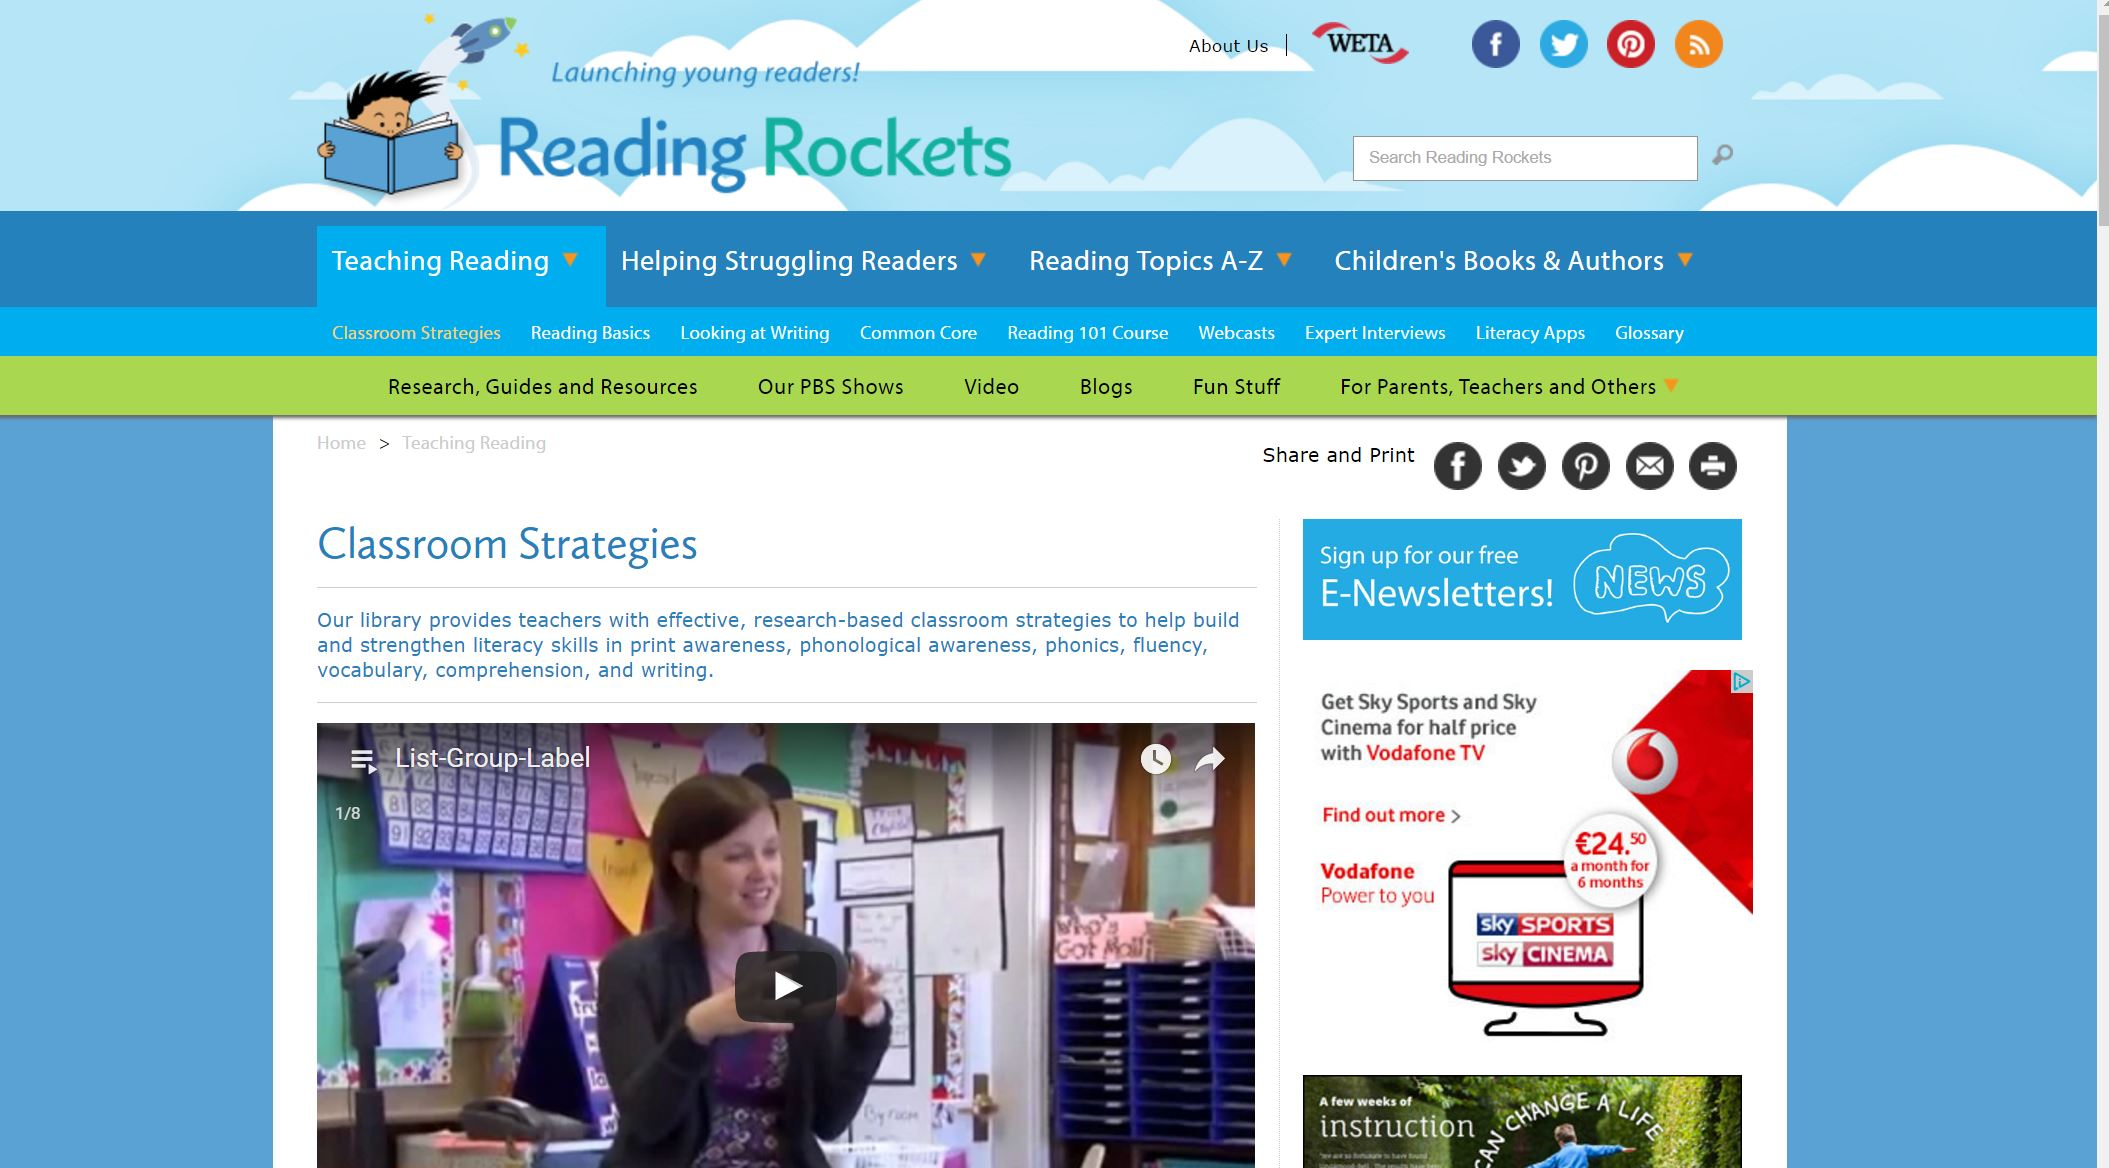 www.readingrockets.org